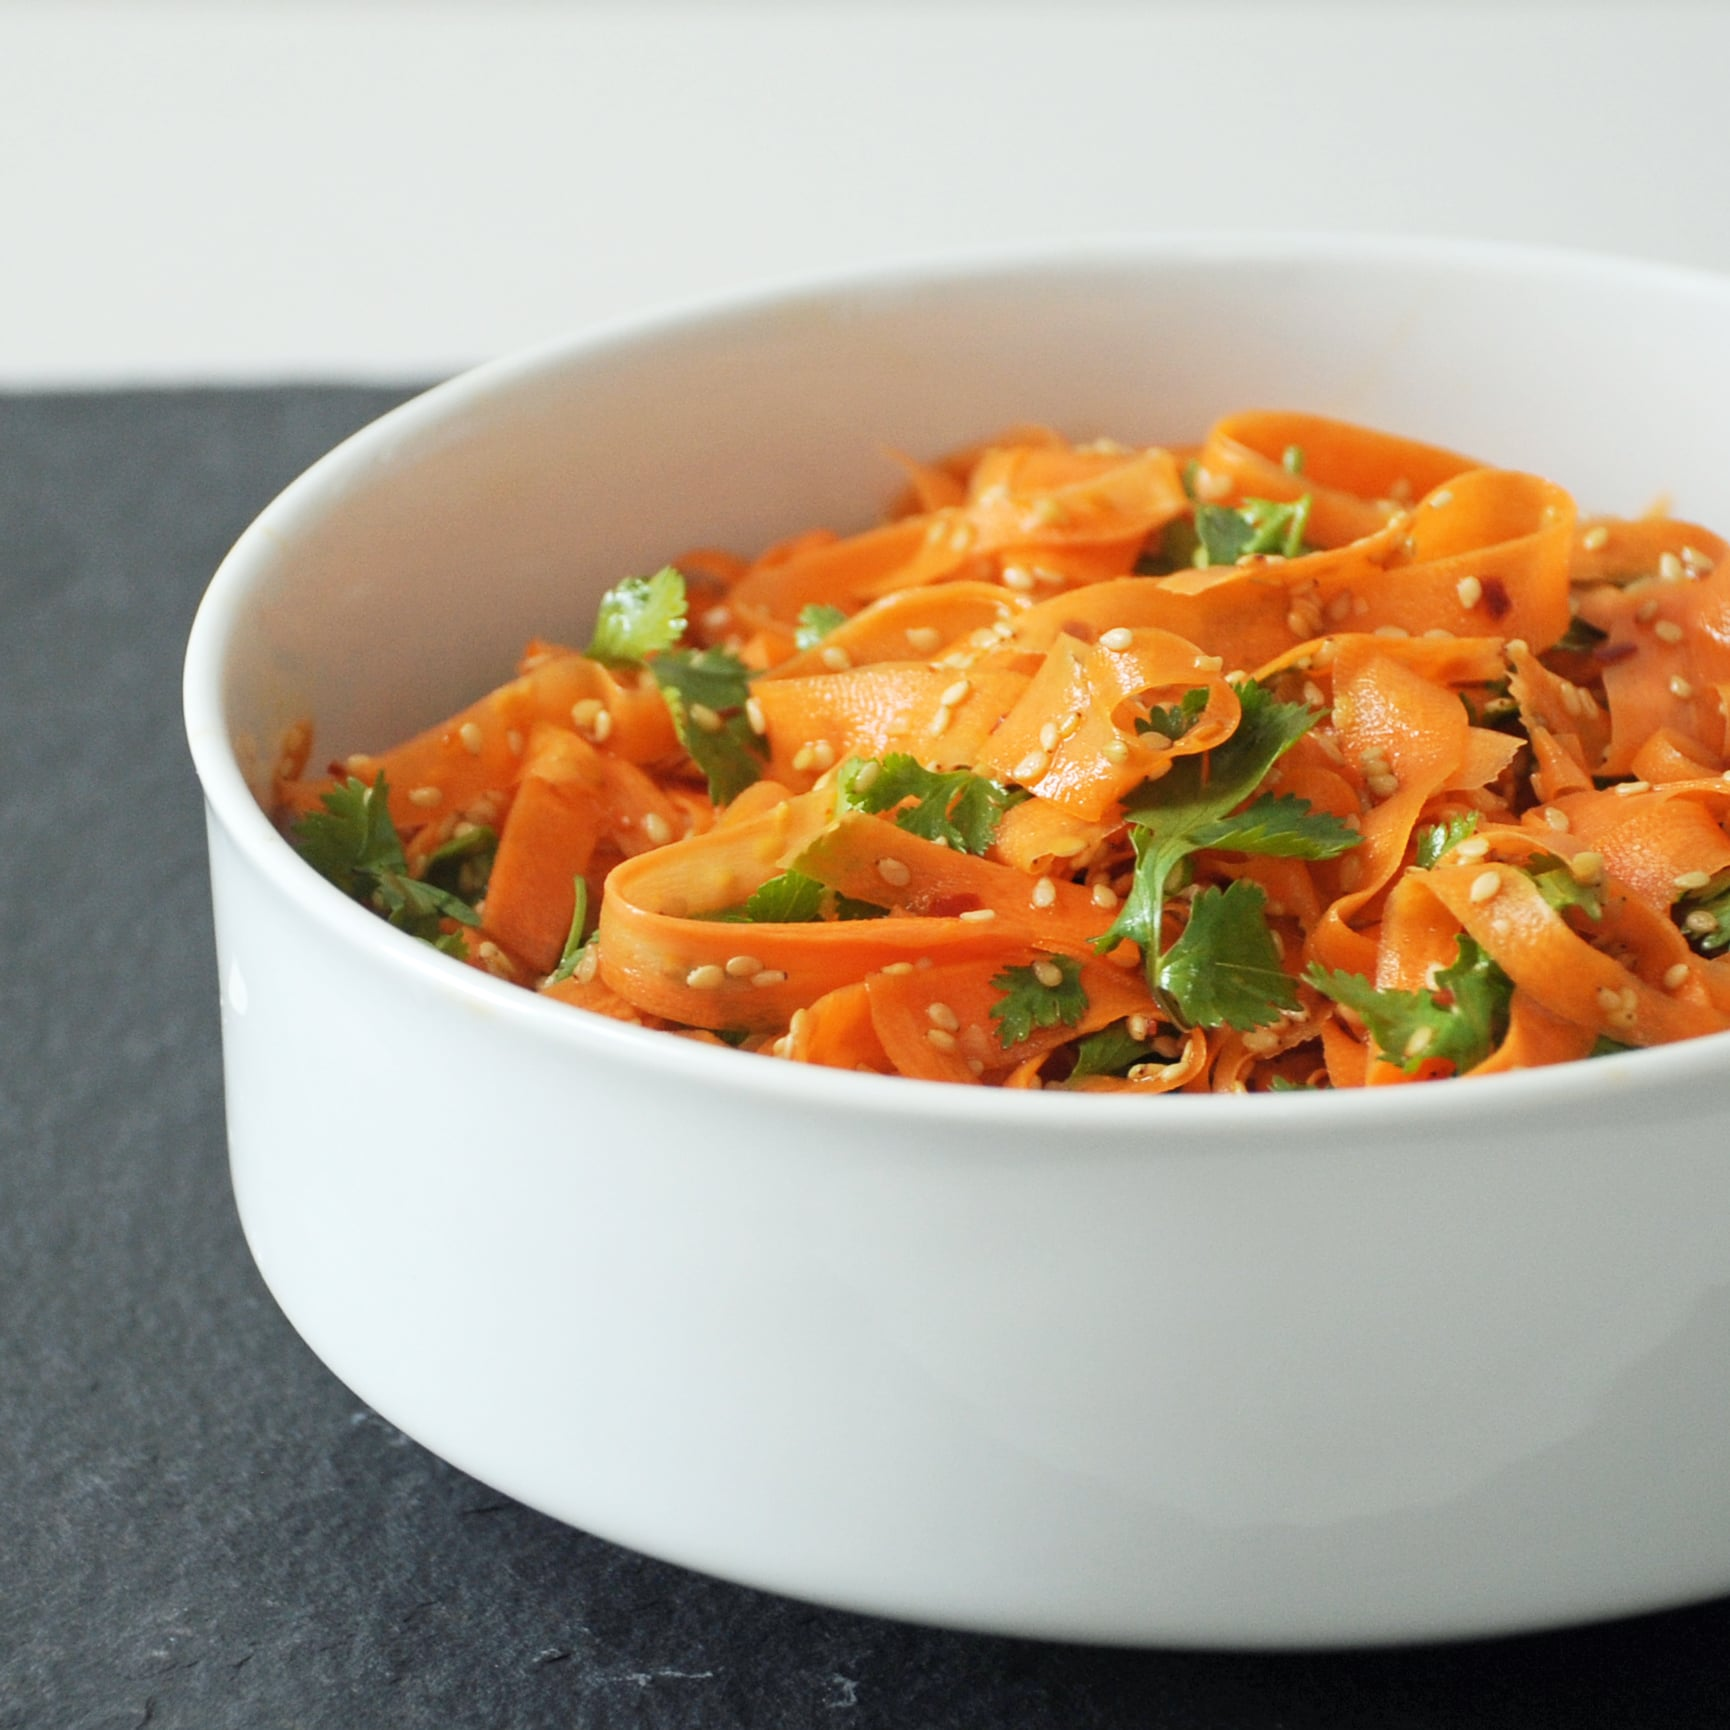 Spicy Sesame Carrot Salad